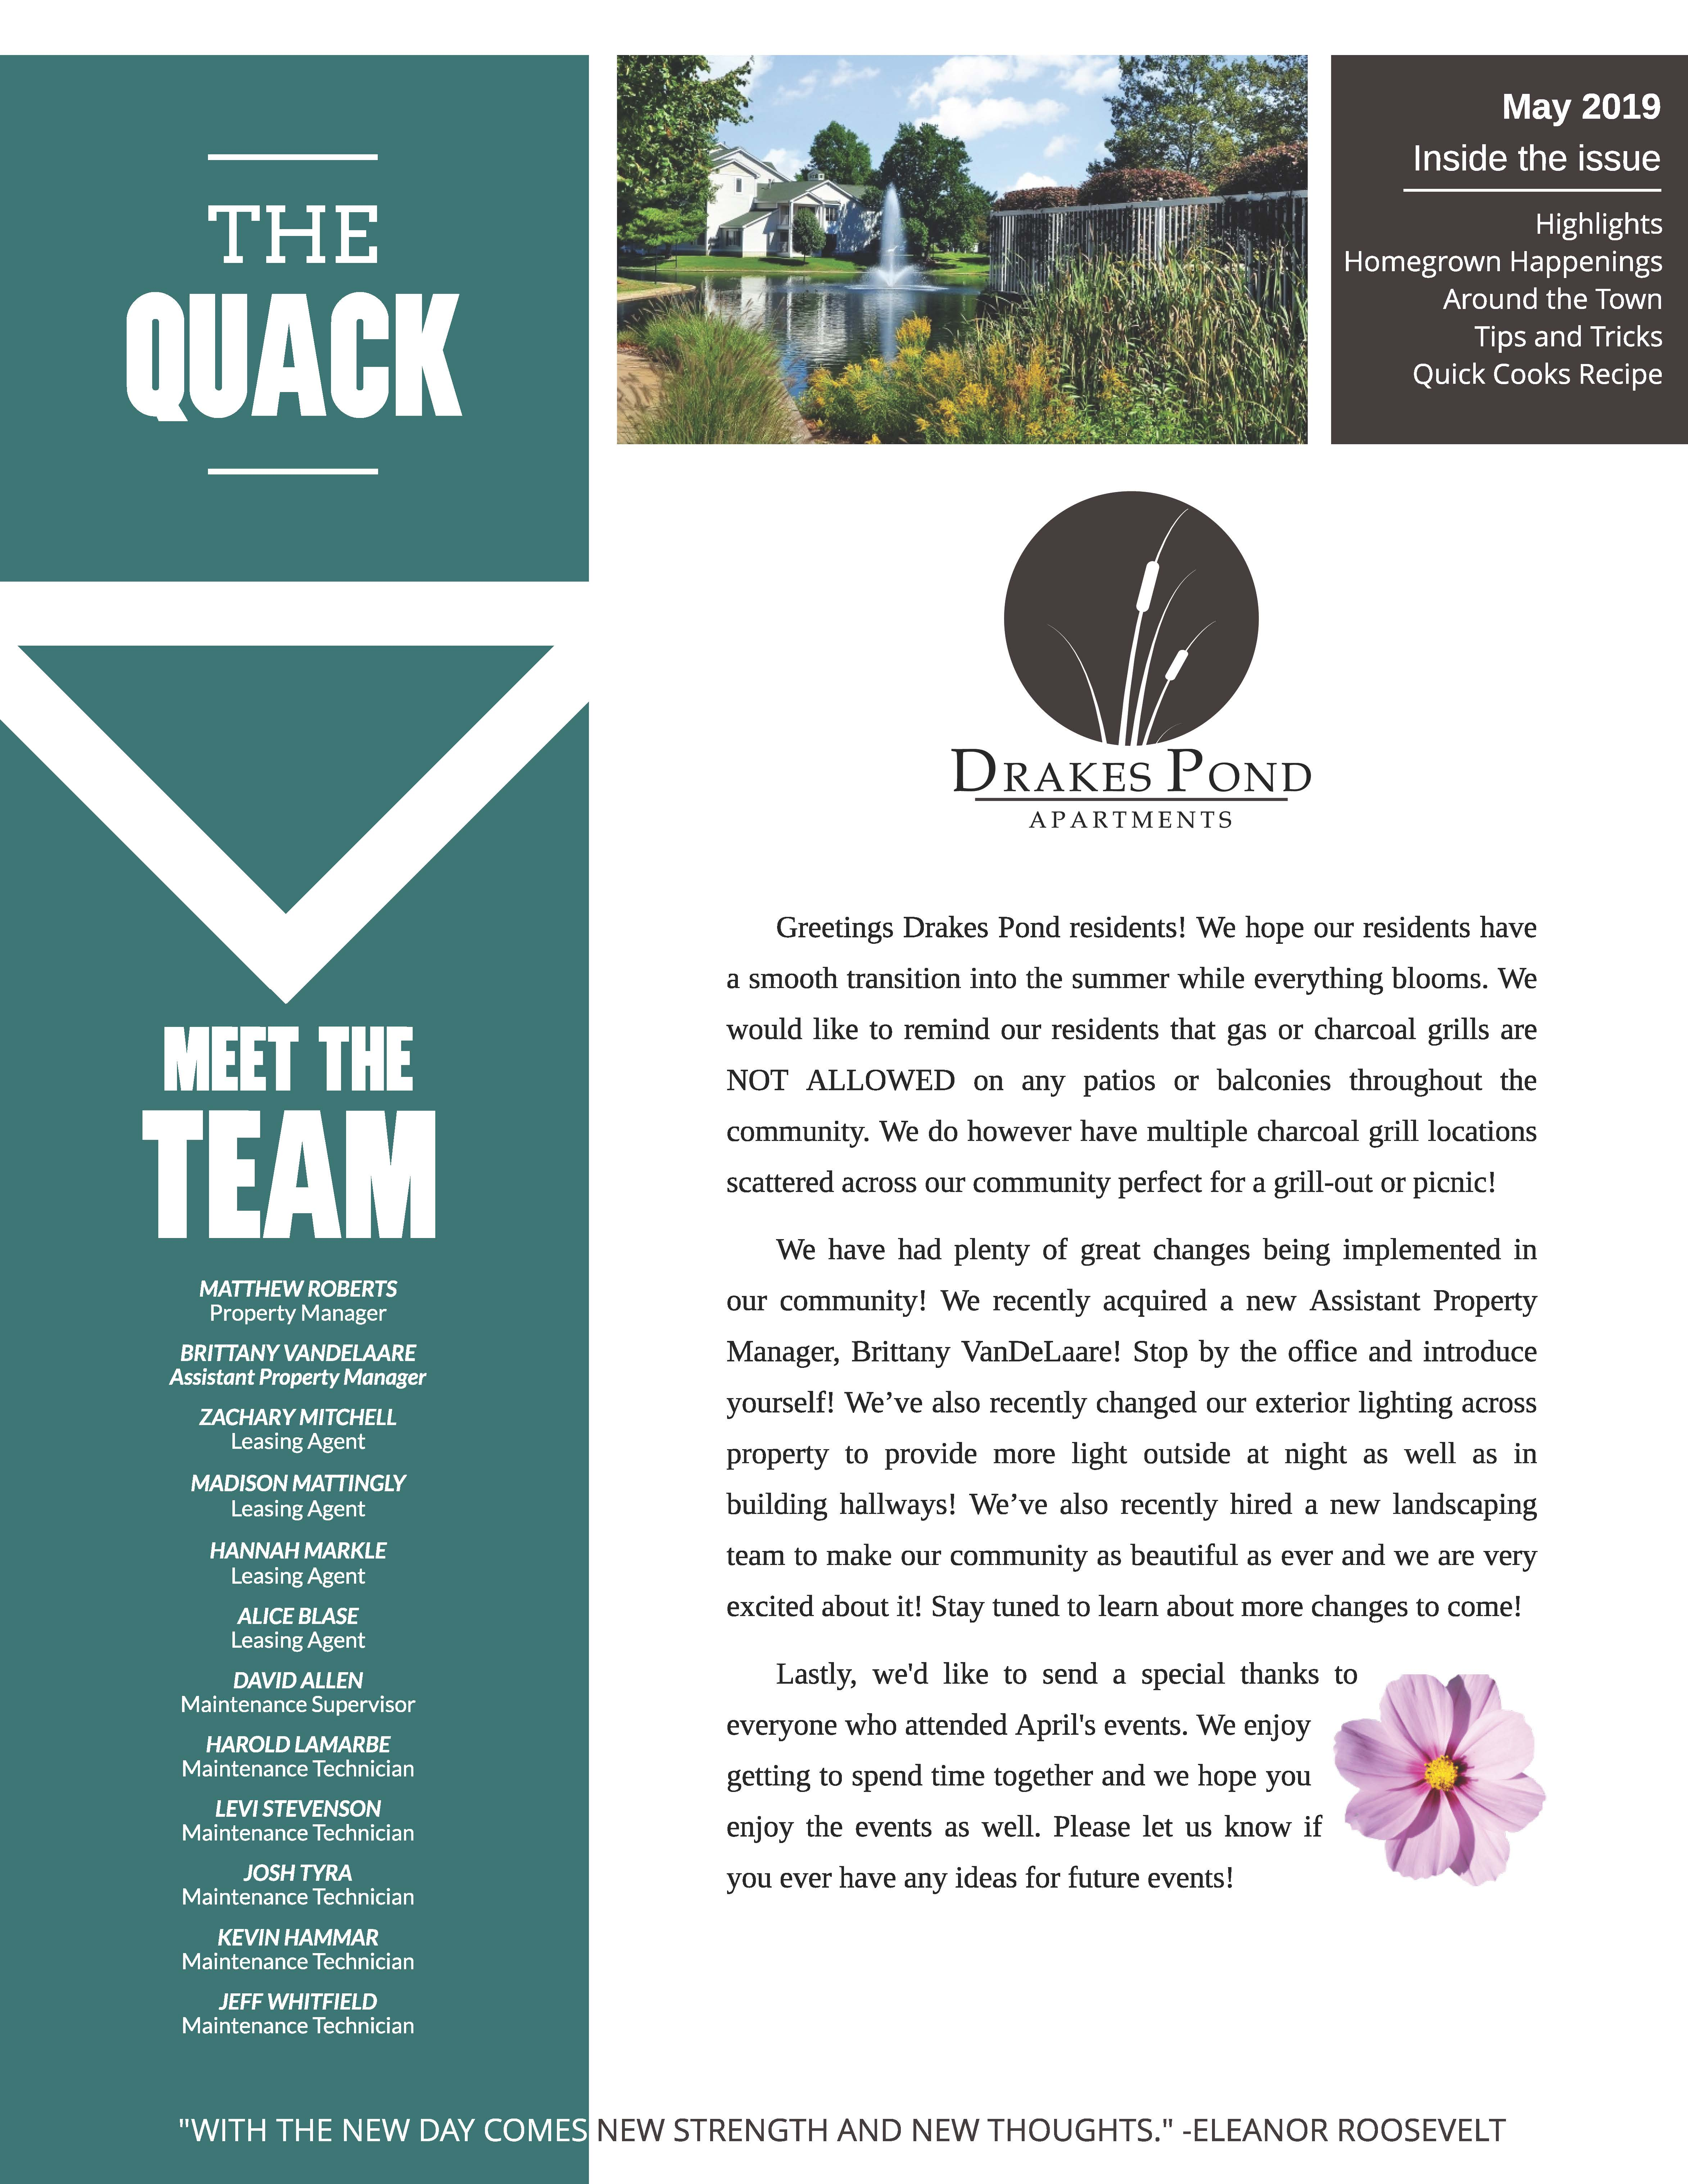 May 2019 Newsletter The Quack